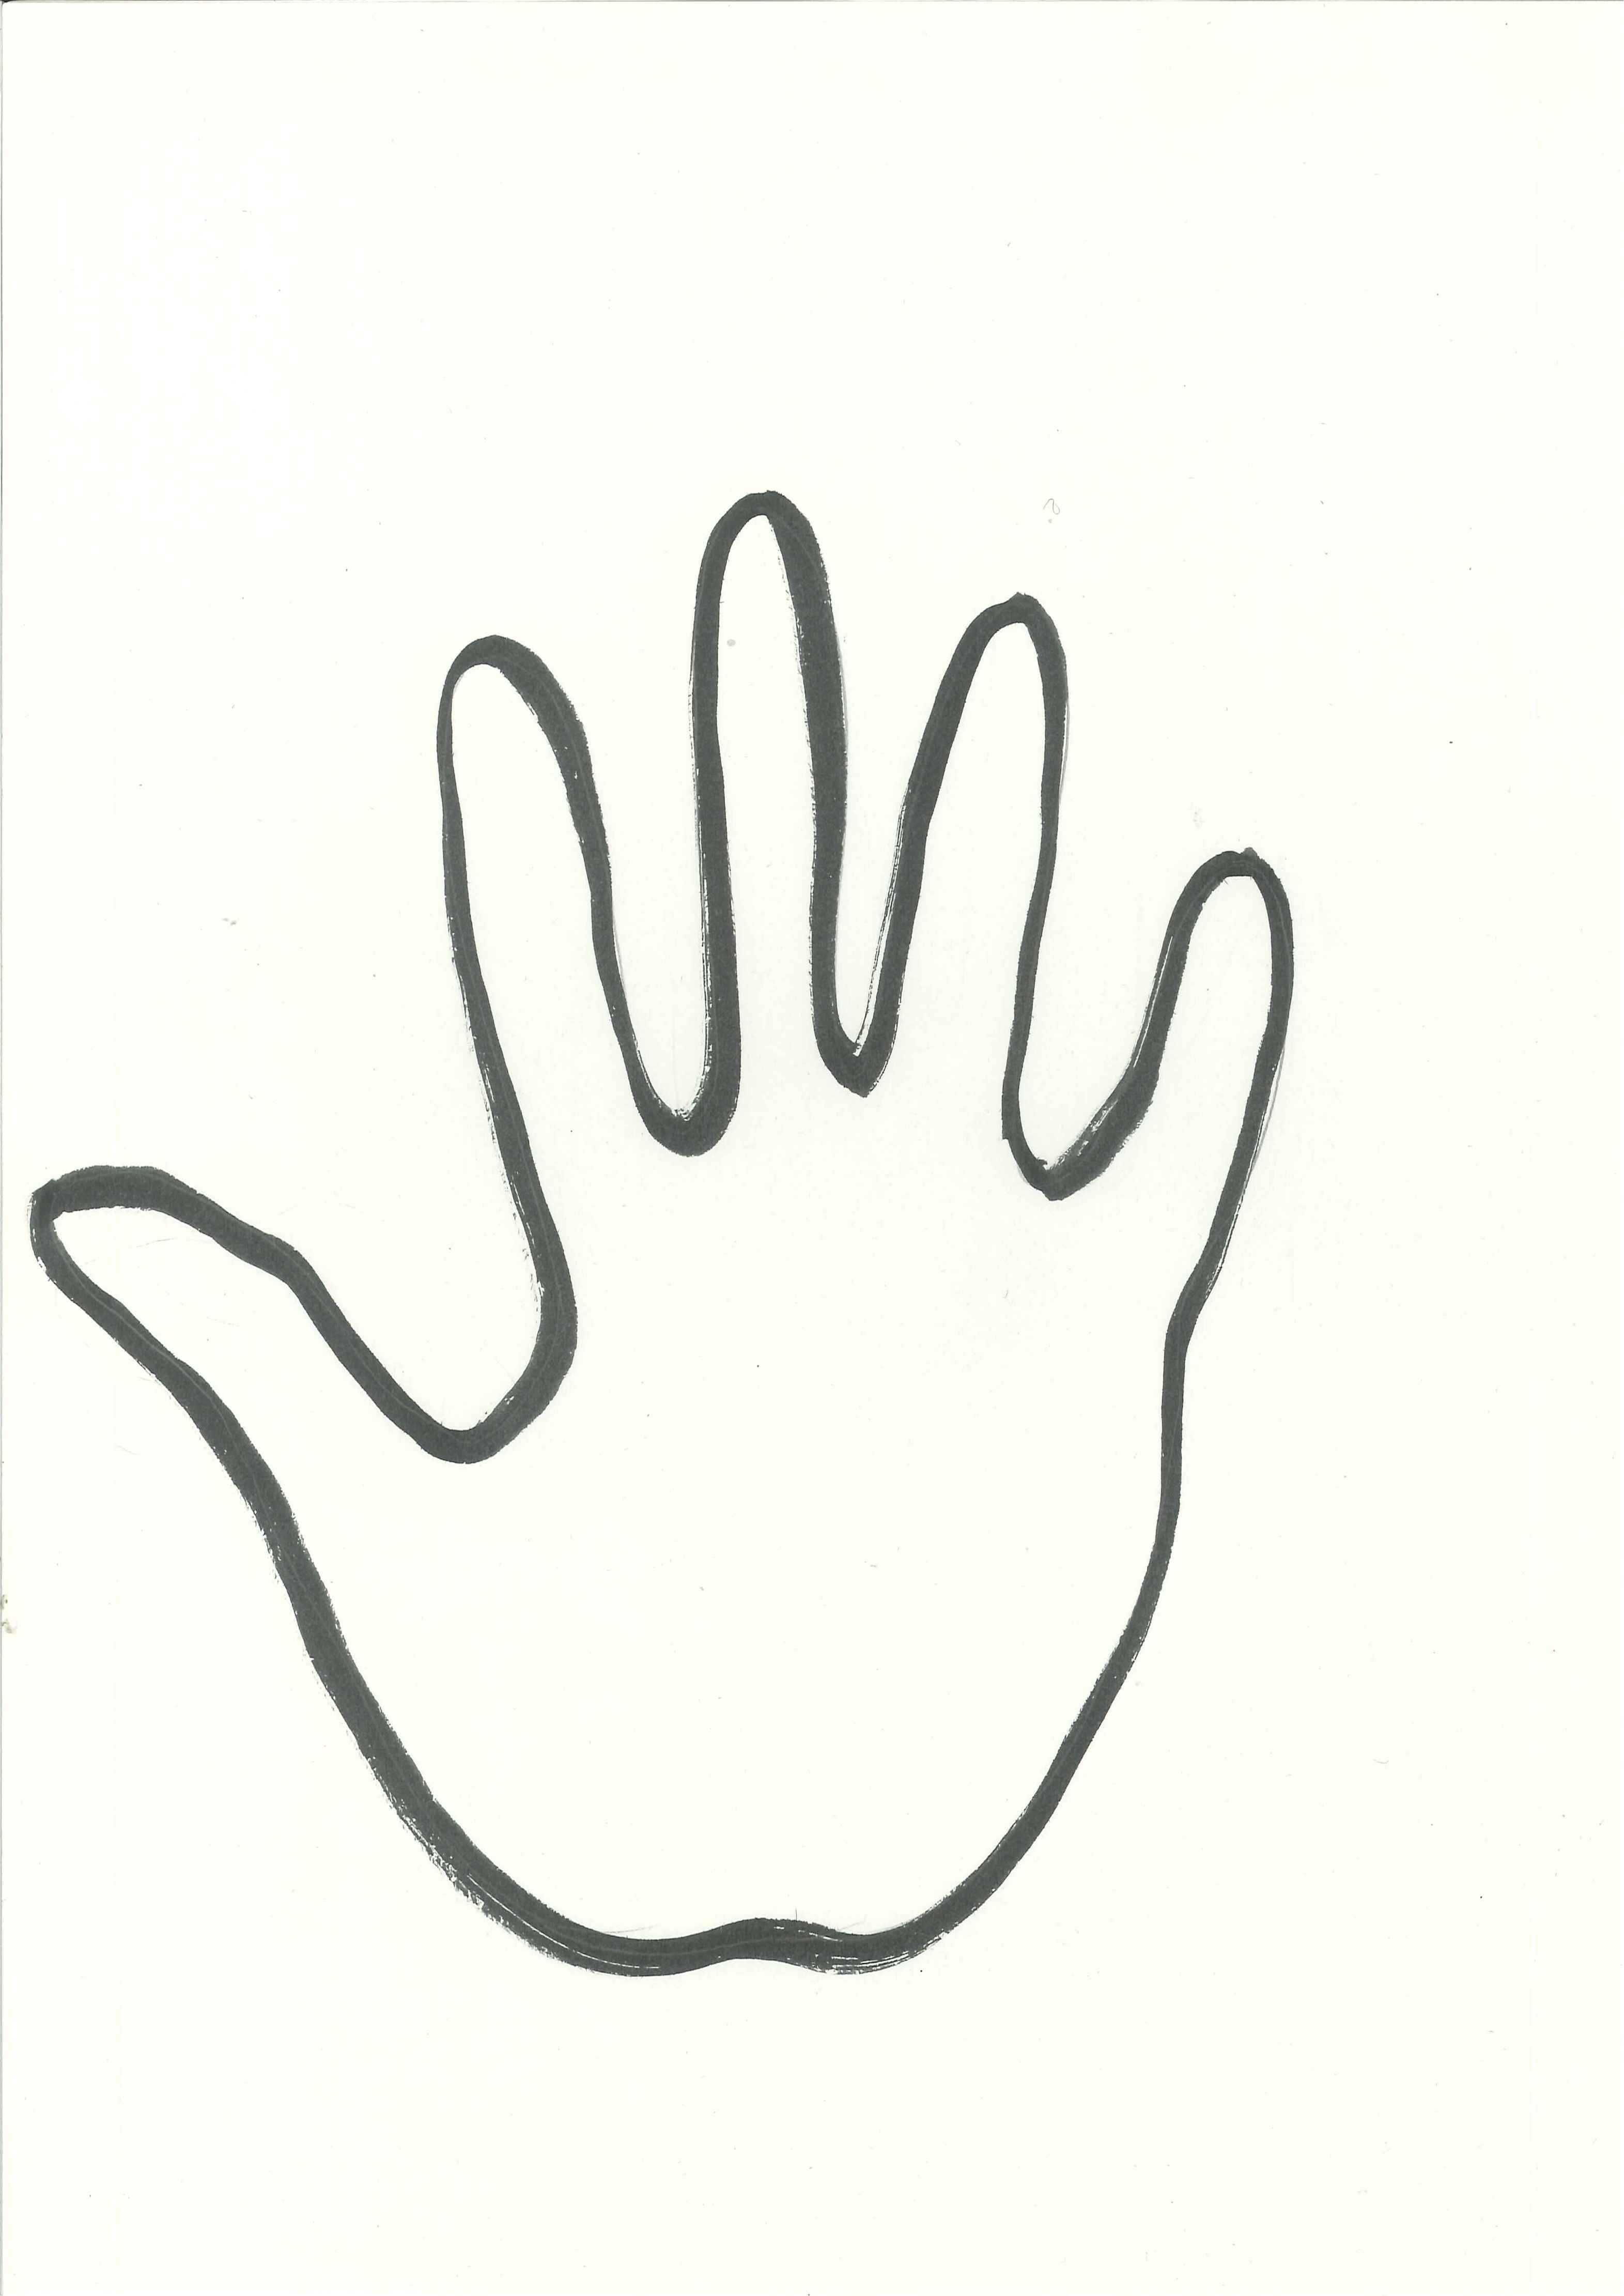 handprint outline clipart - Clipground